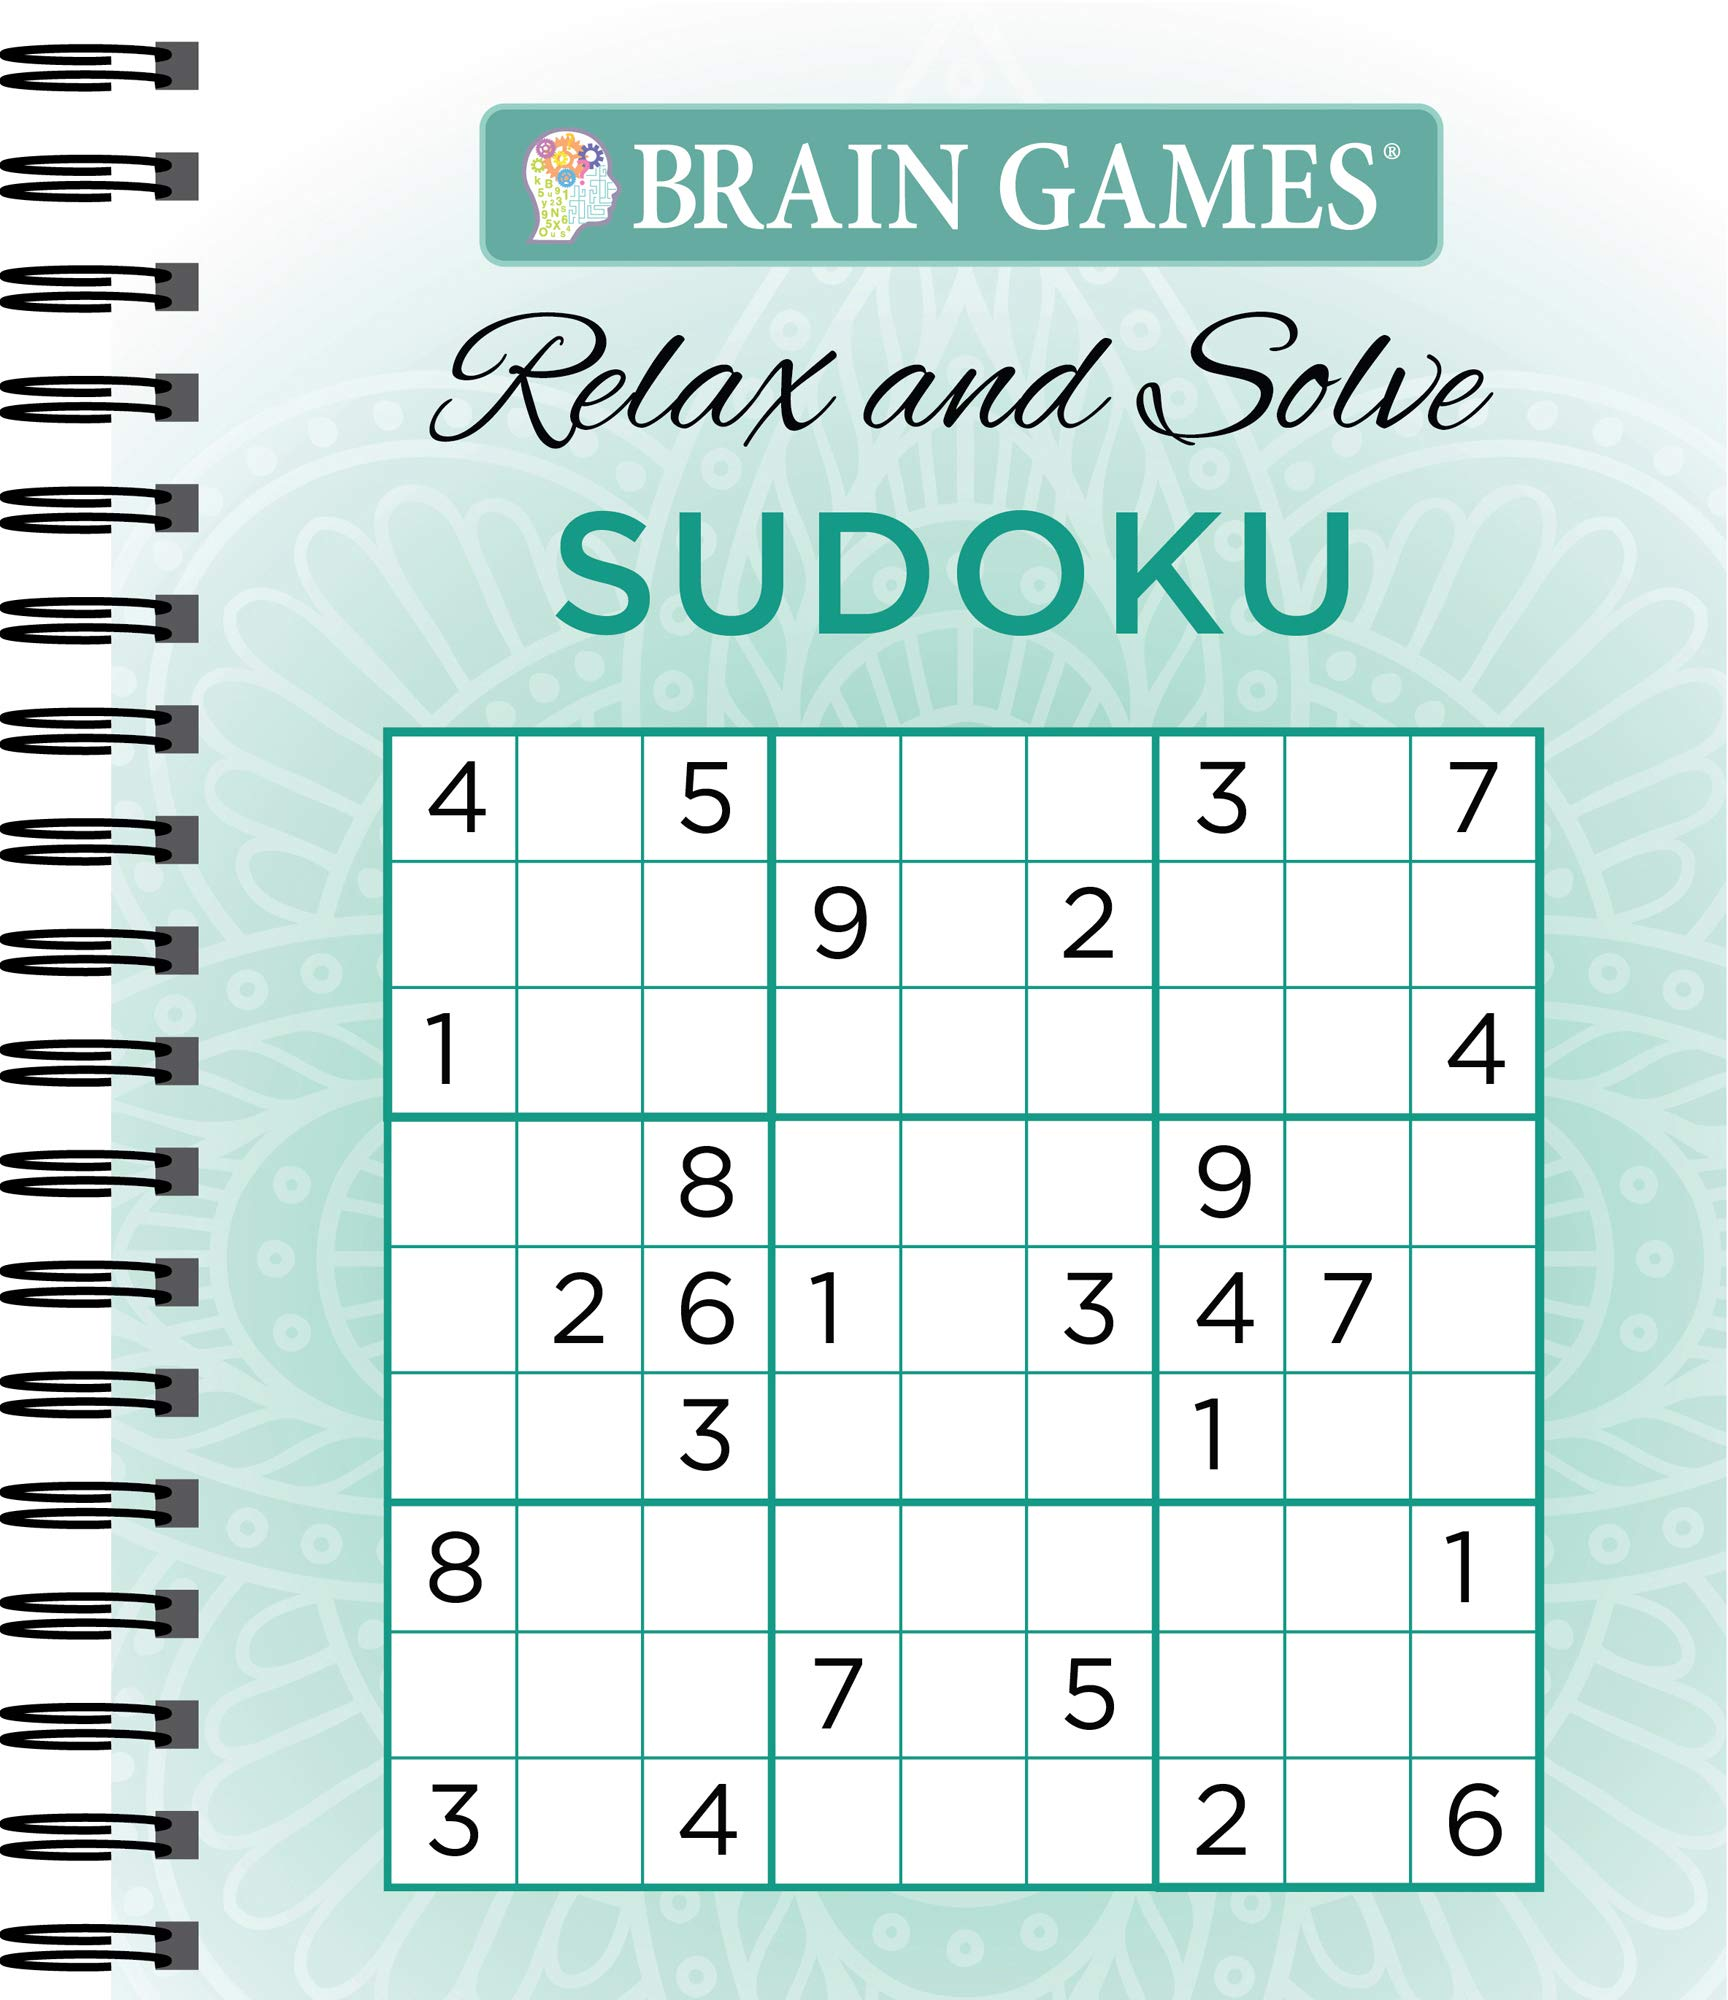 Amazon com: Brain Games - Relax and Solve: Sudoku (Teal